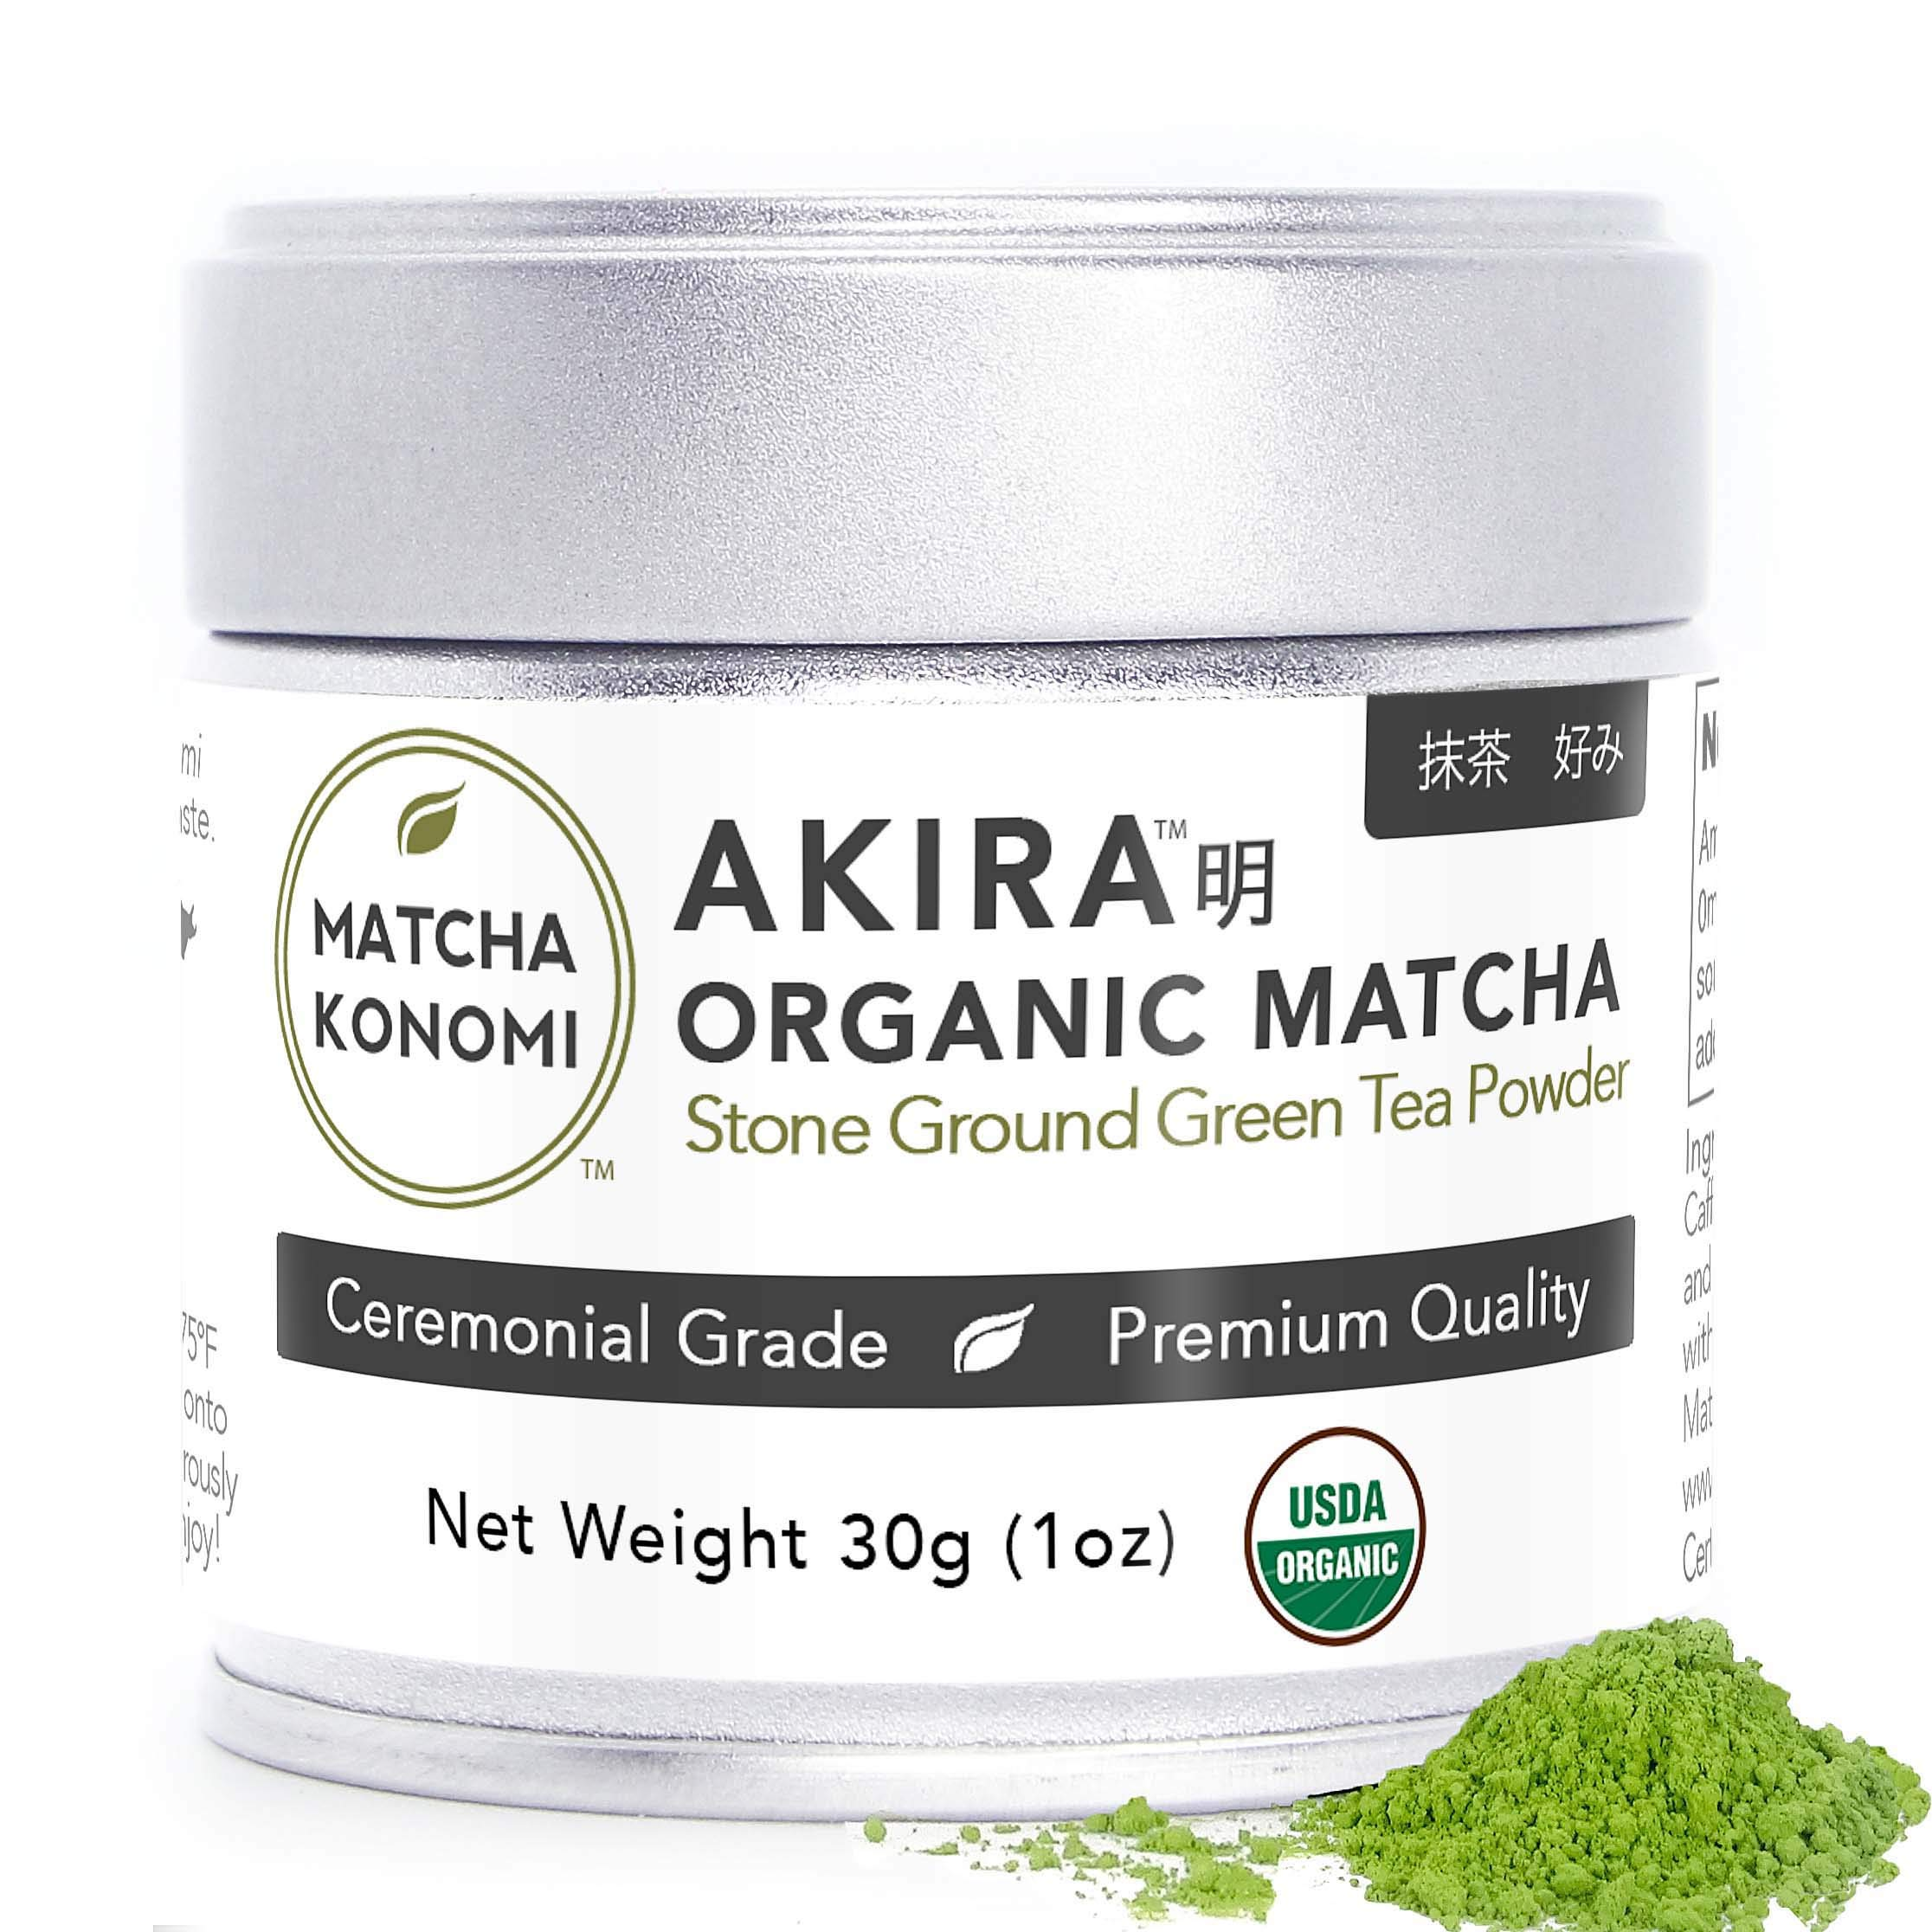 Akira Matcha 30g - Organic Premium Ceremonial Japanese Matcha Green Tea Powder - First Harvest, Radiation Free, No Additives, Zero Sugar - USDA and JAS Certified